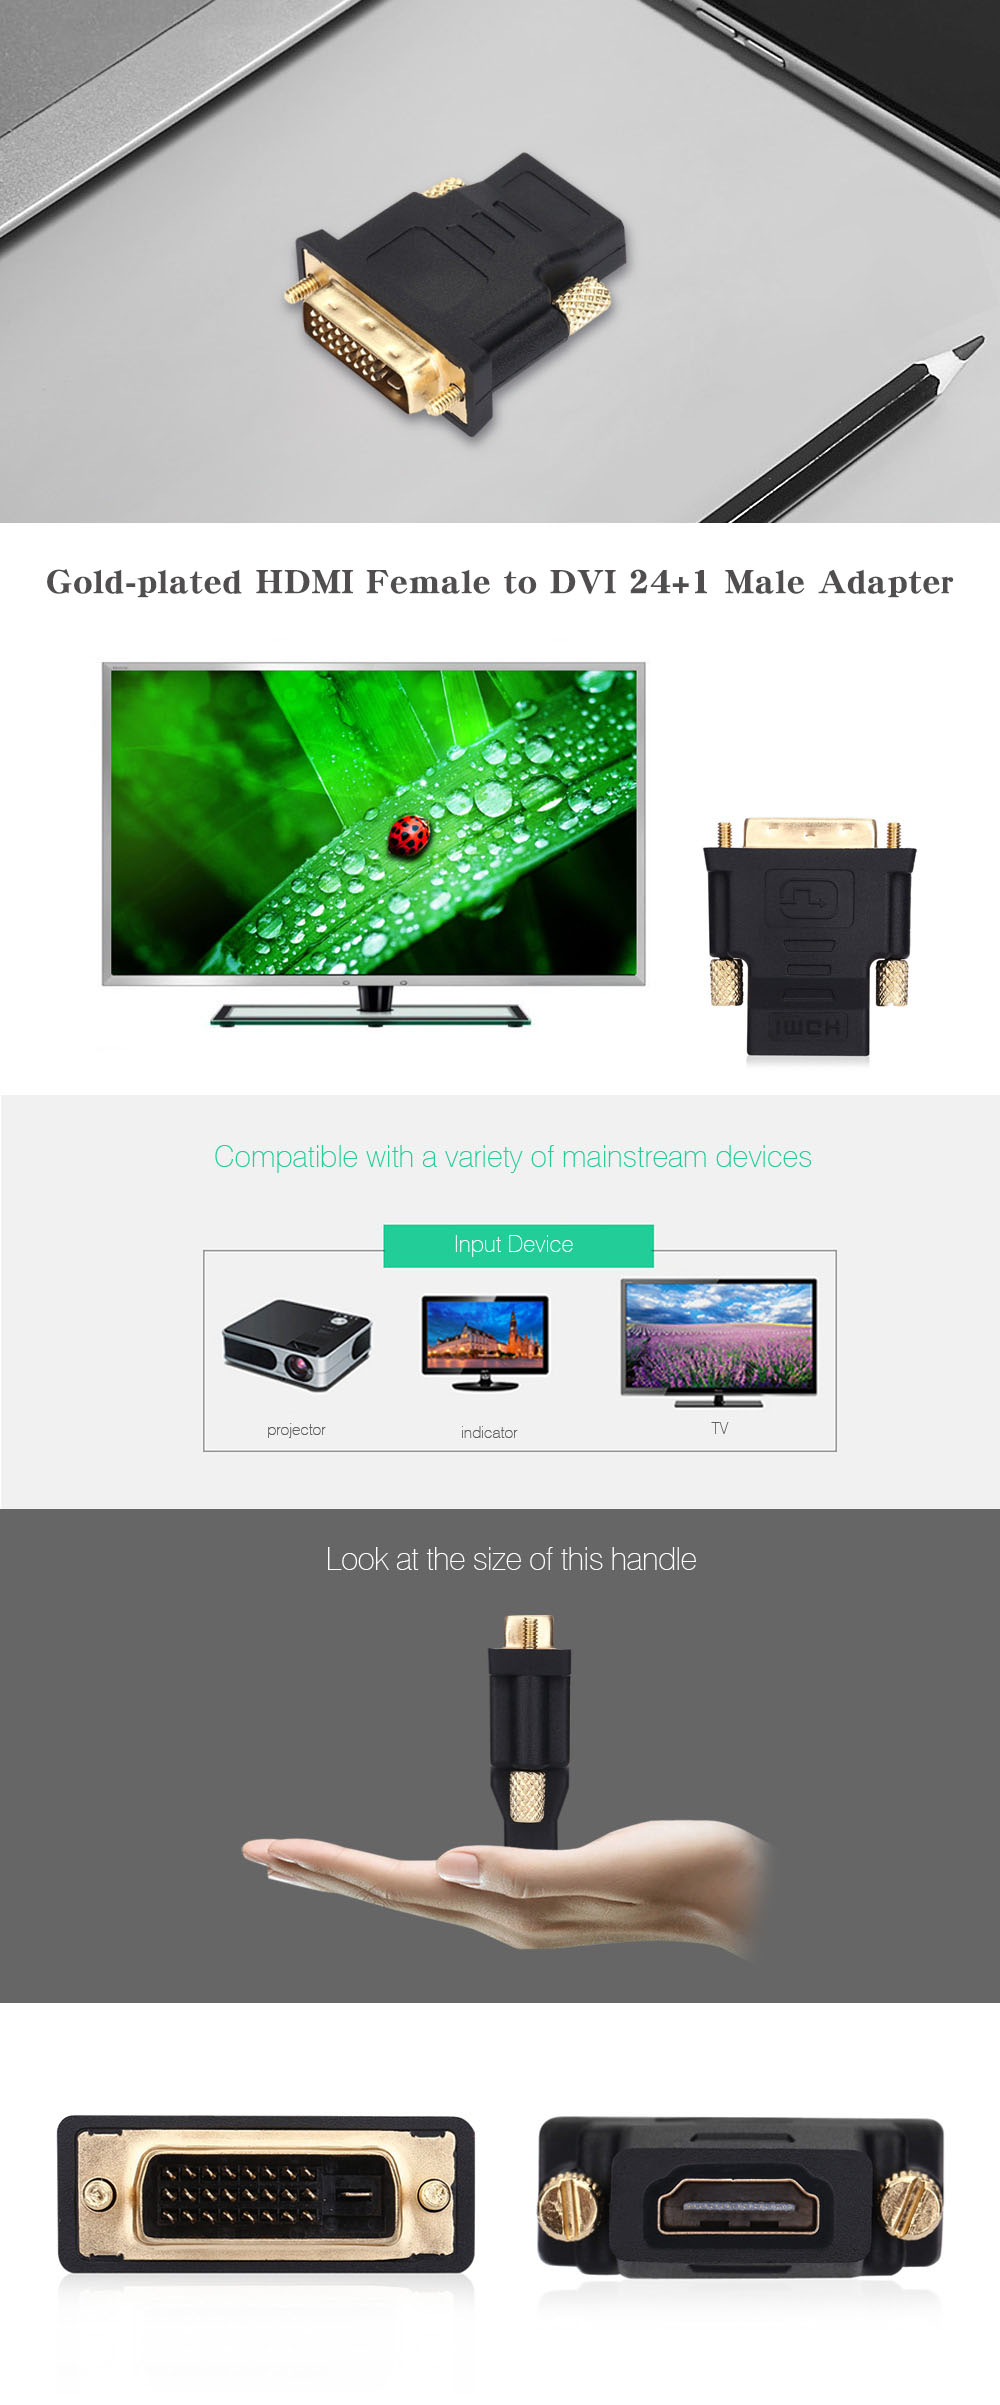 Gold-plated HDMI Female to DVI 24+1 Male Adapter Connector